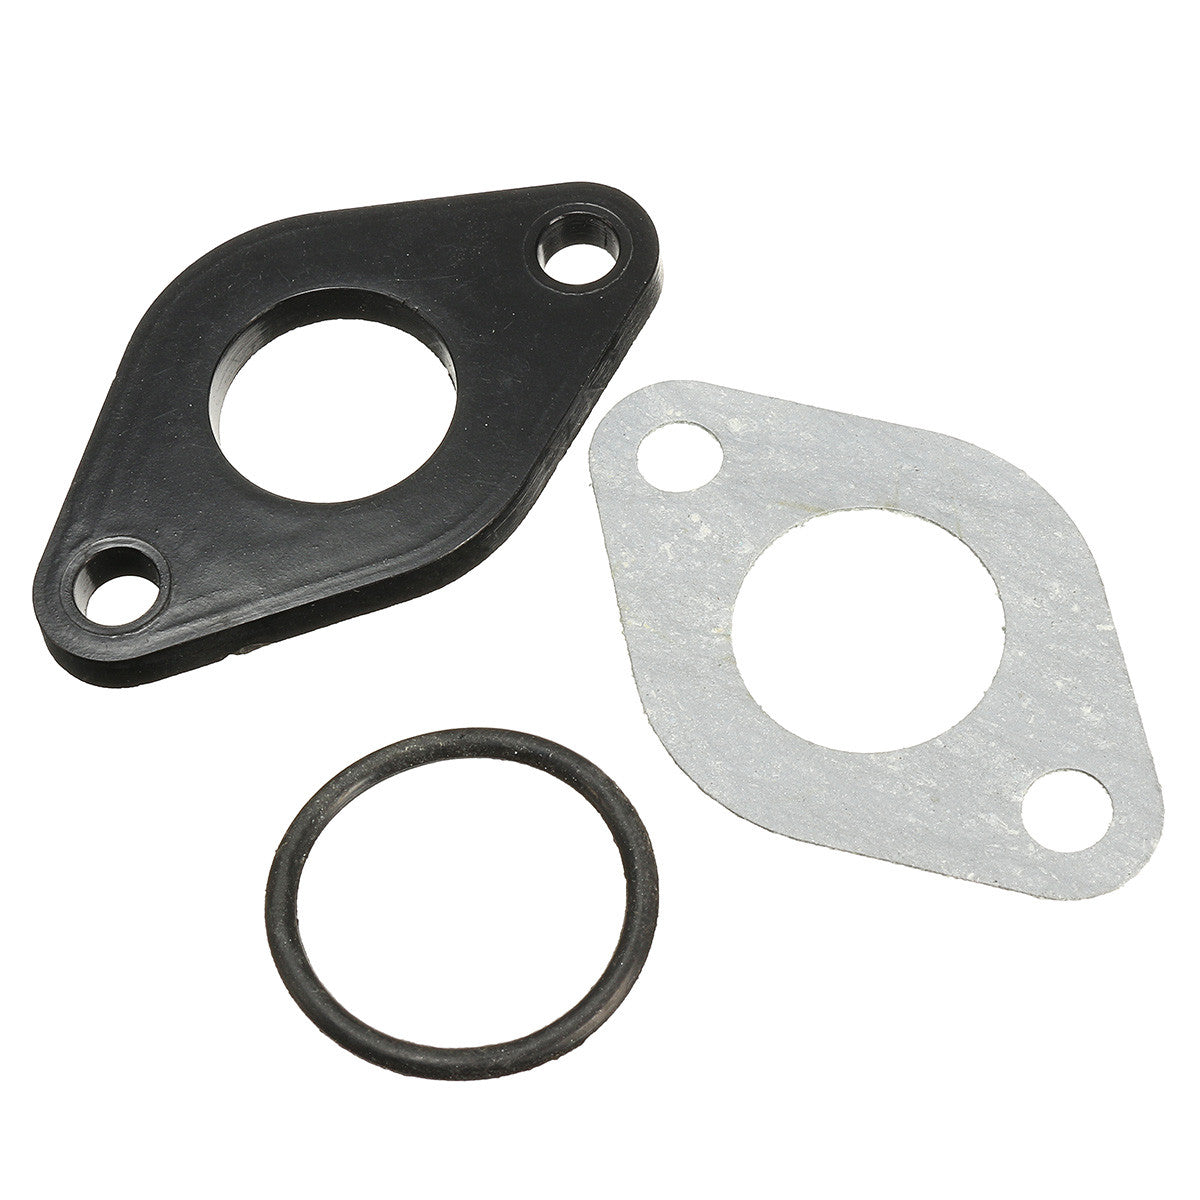 28mm Plastic Carburetor Inlet Manifold Gasket For Pit Dirt Bike